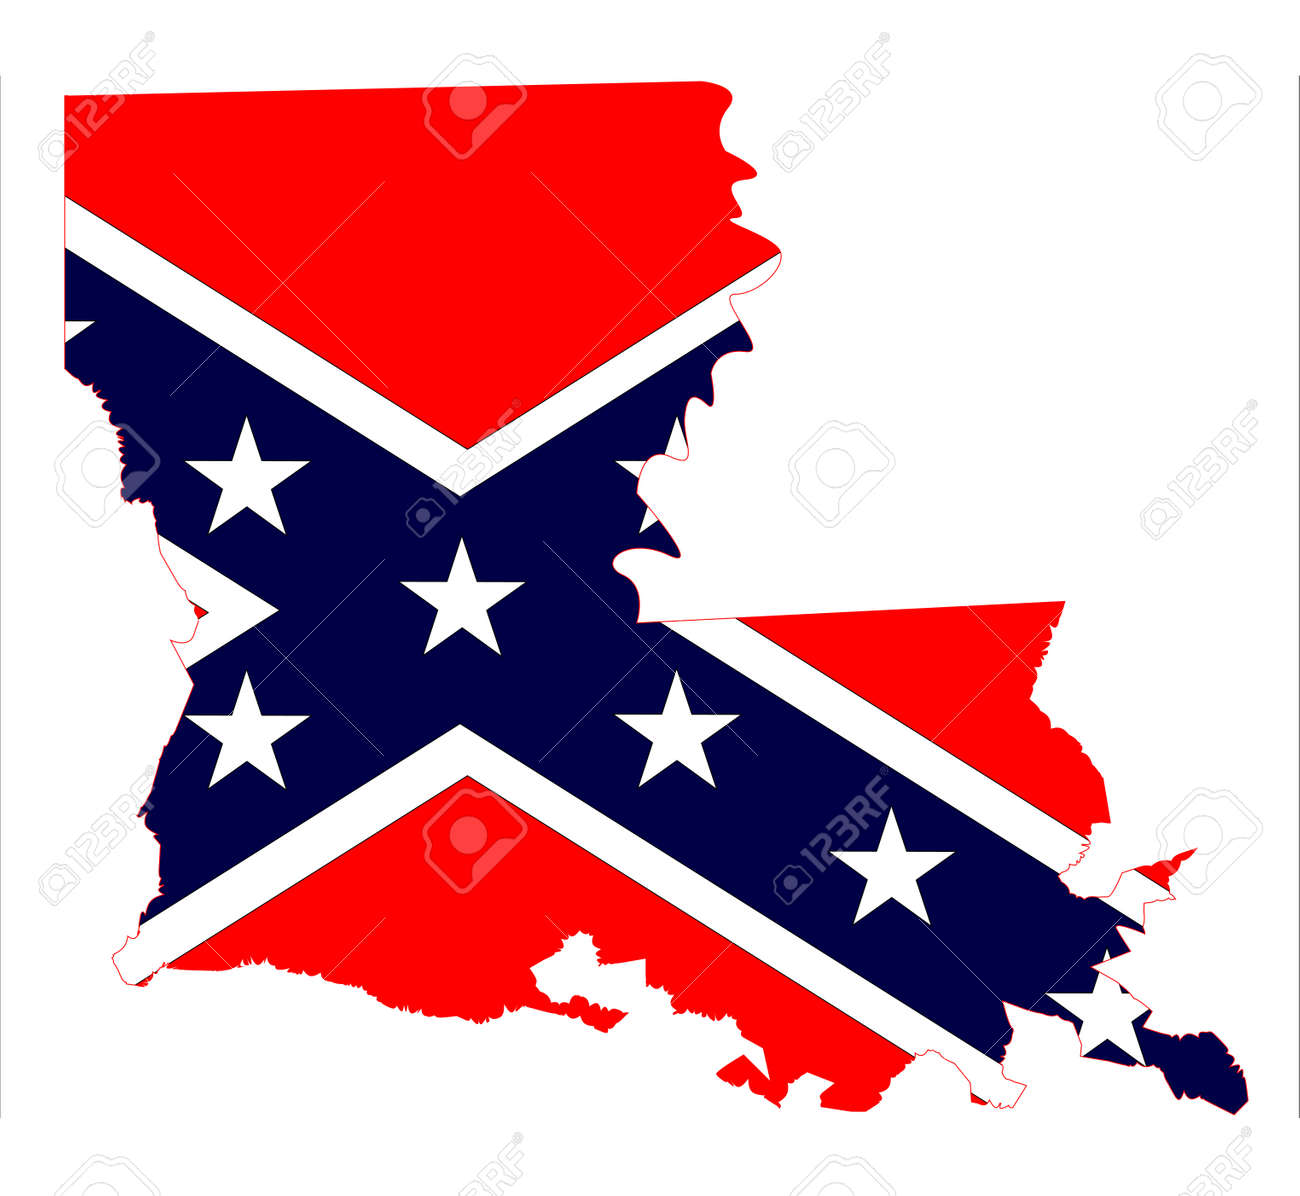 State Map Outline Of Louisiana With Confederate Flag Inset Over - Blank map of united states during civil war